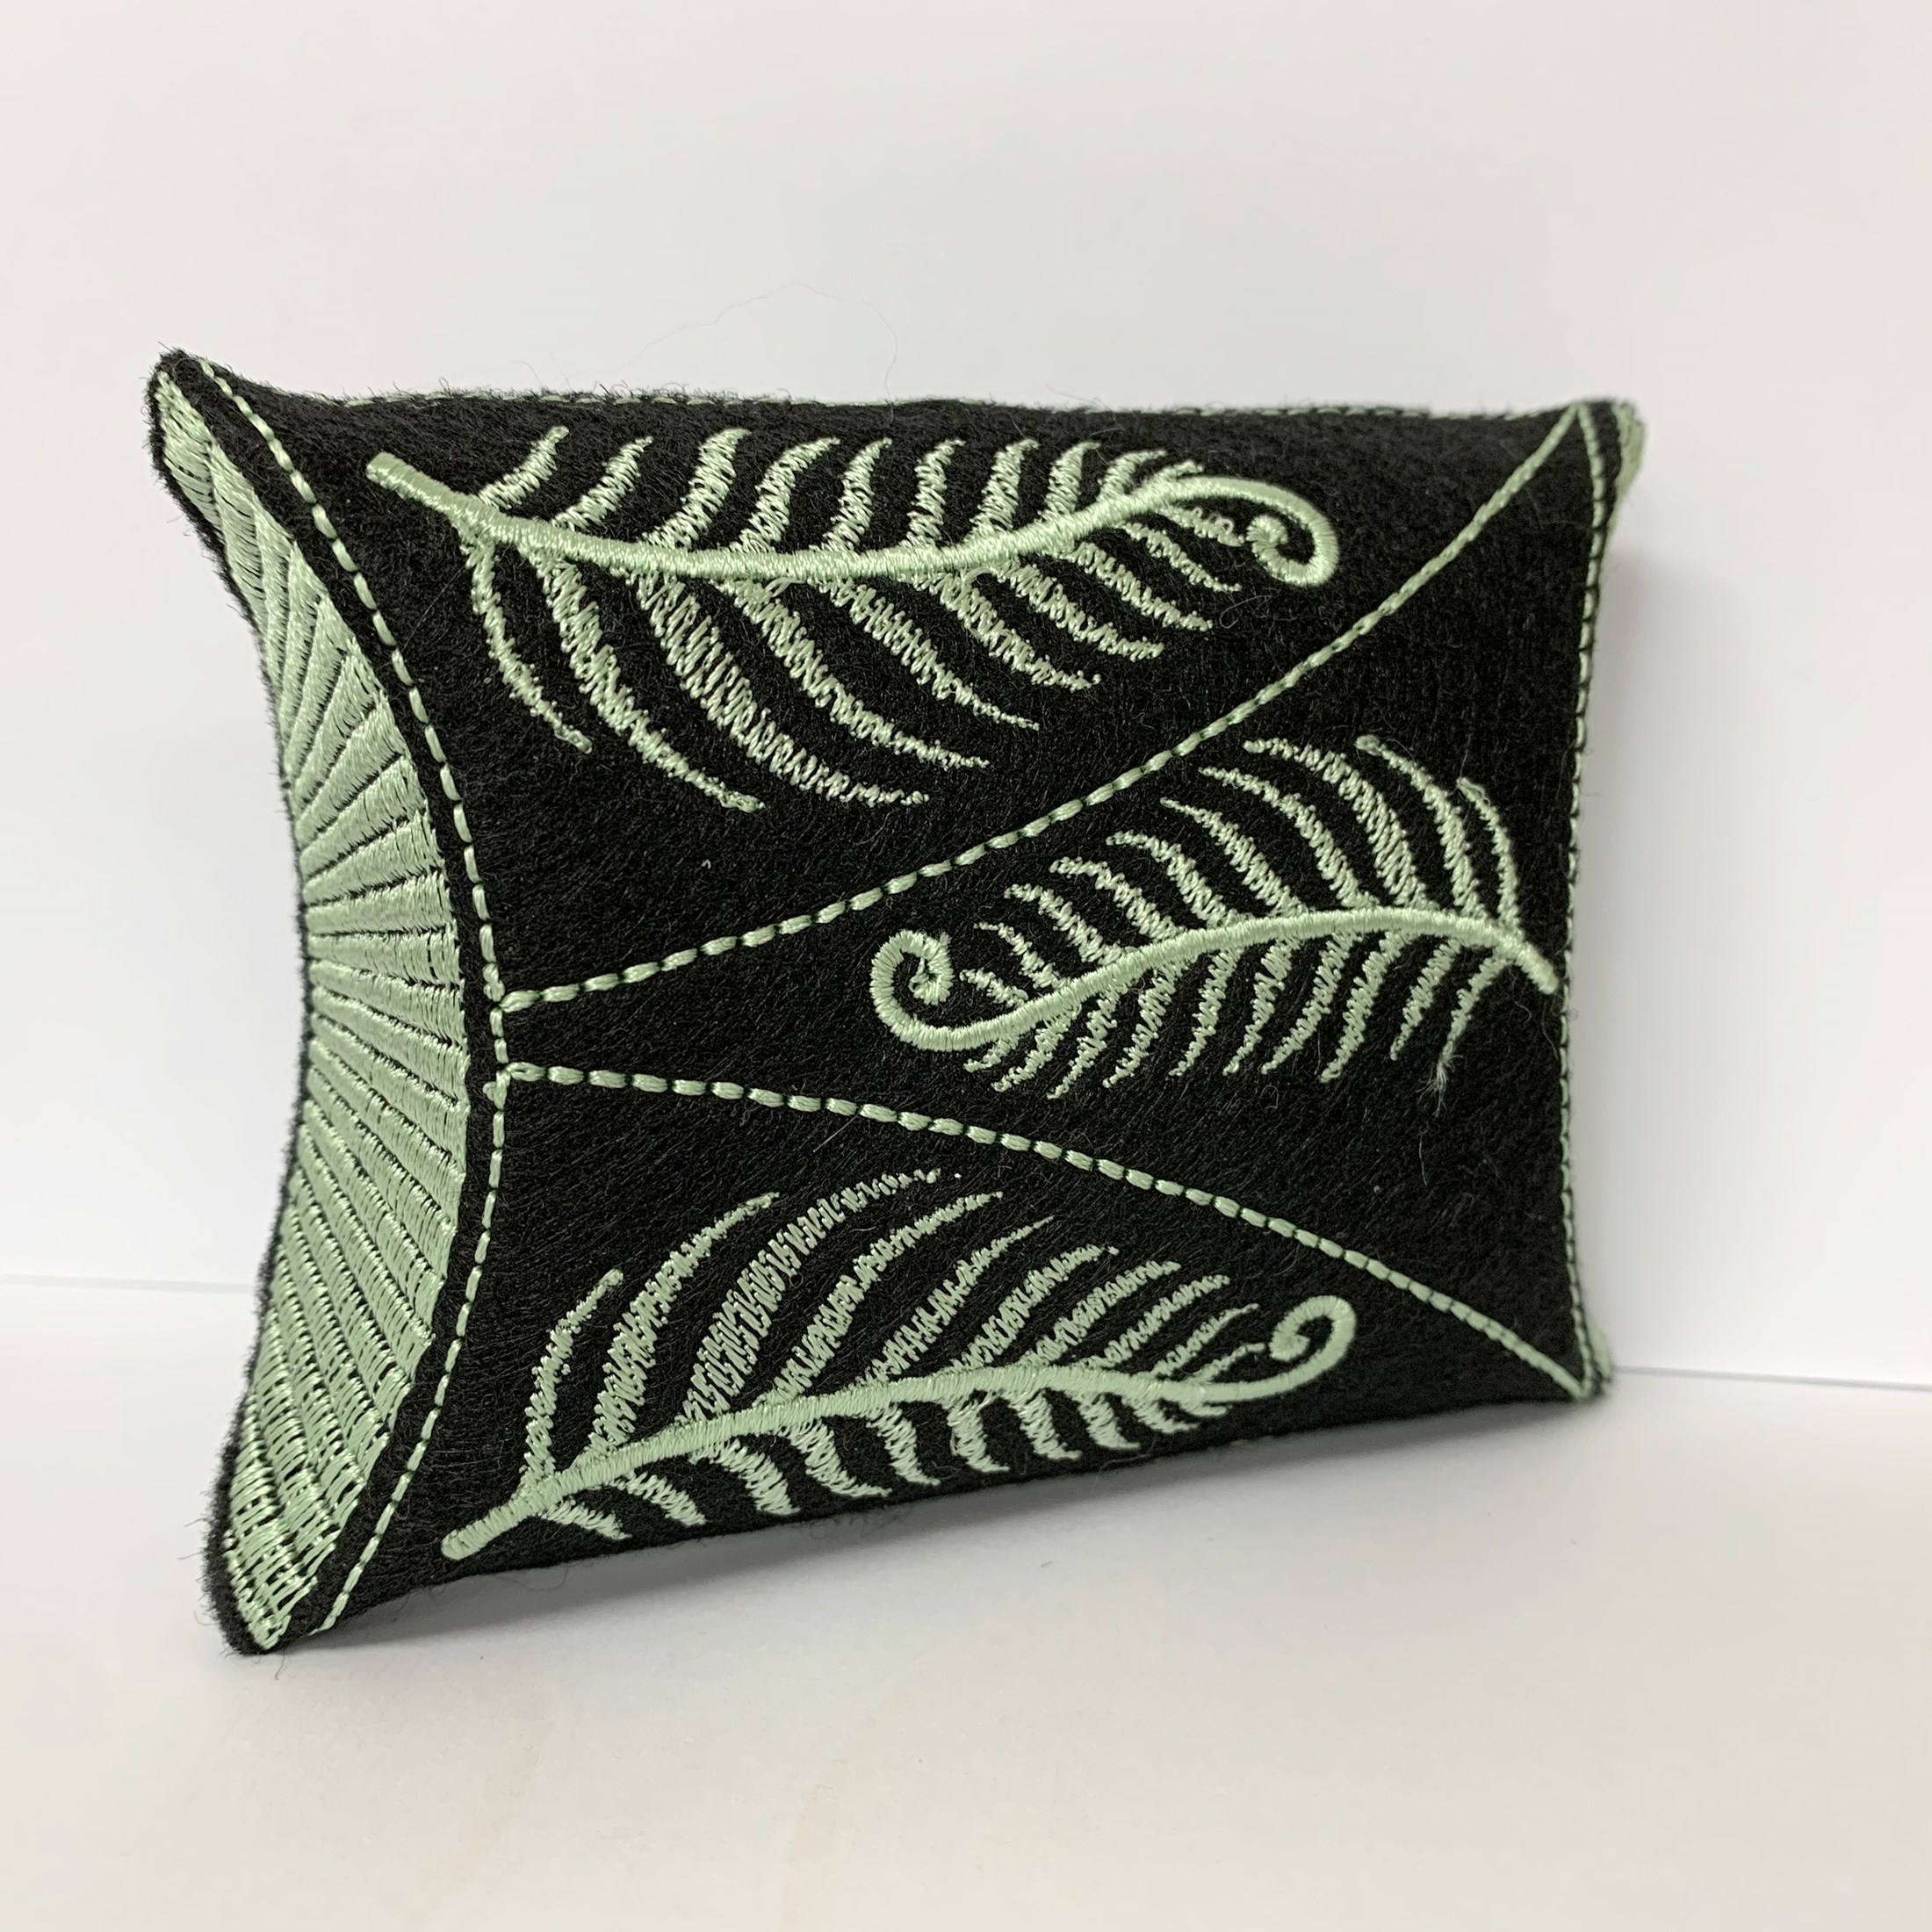 Embroidered Fern Gift Box